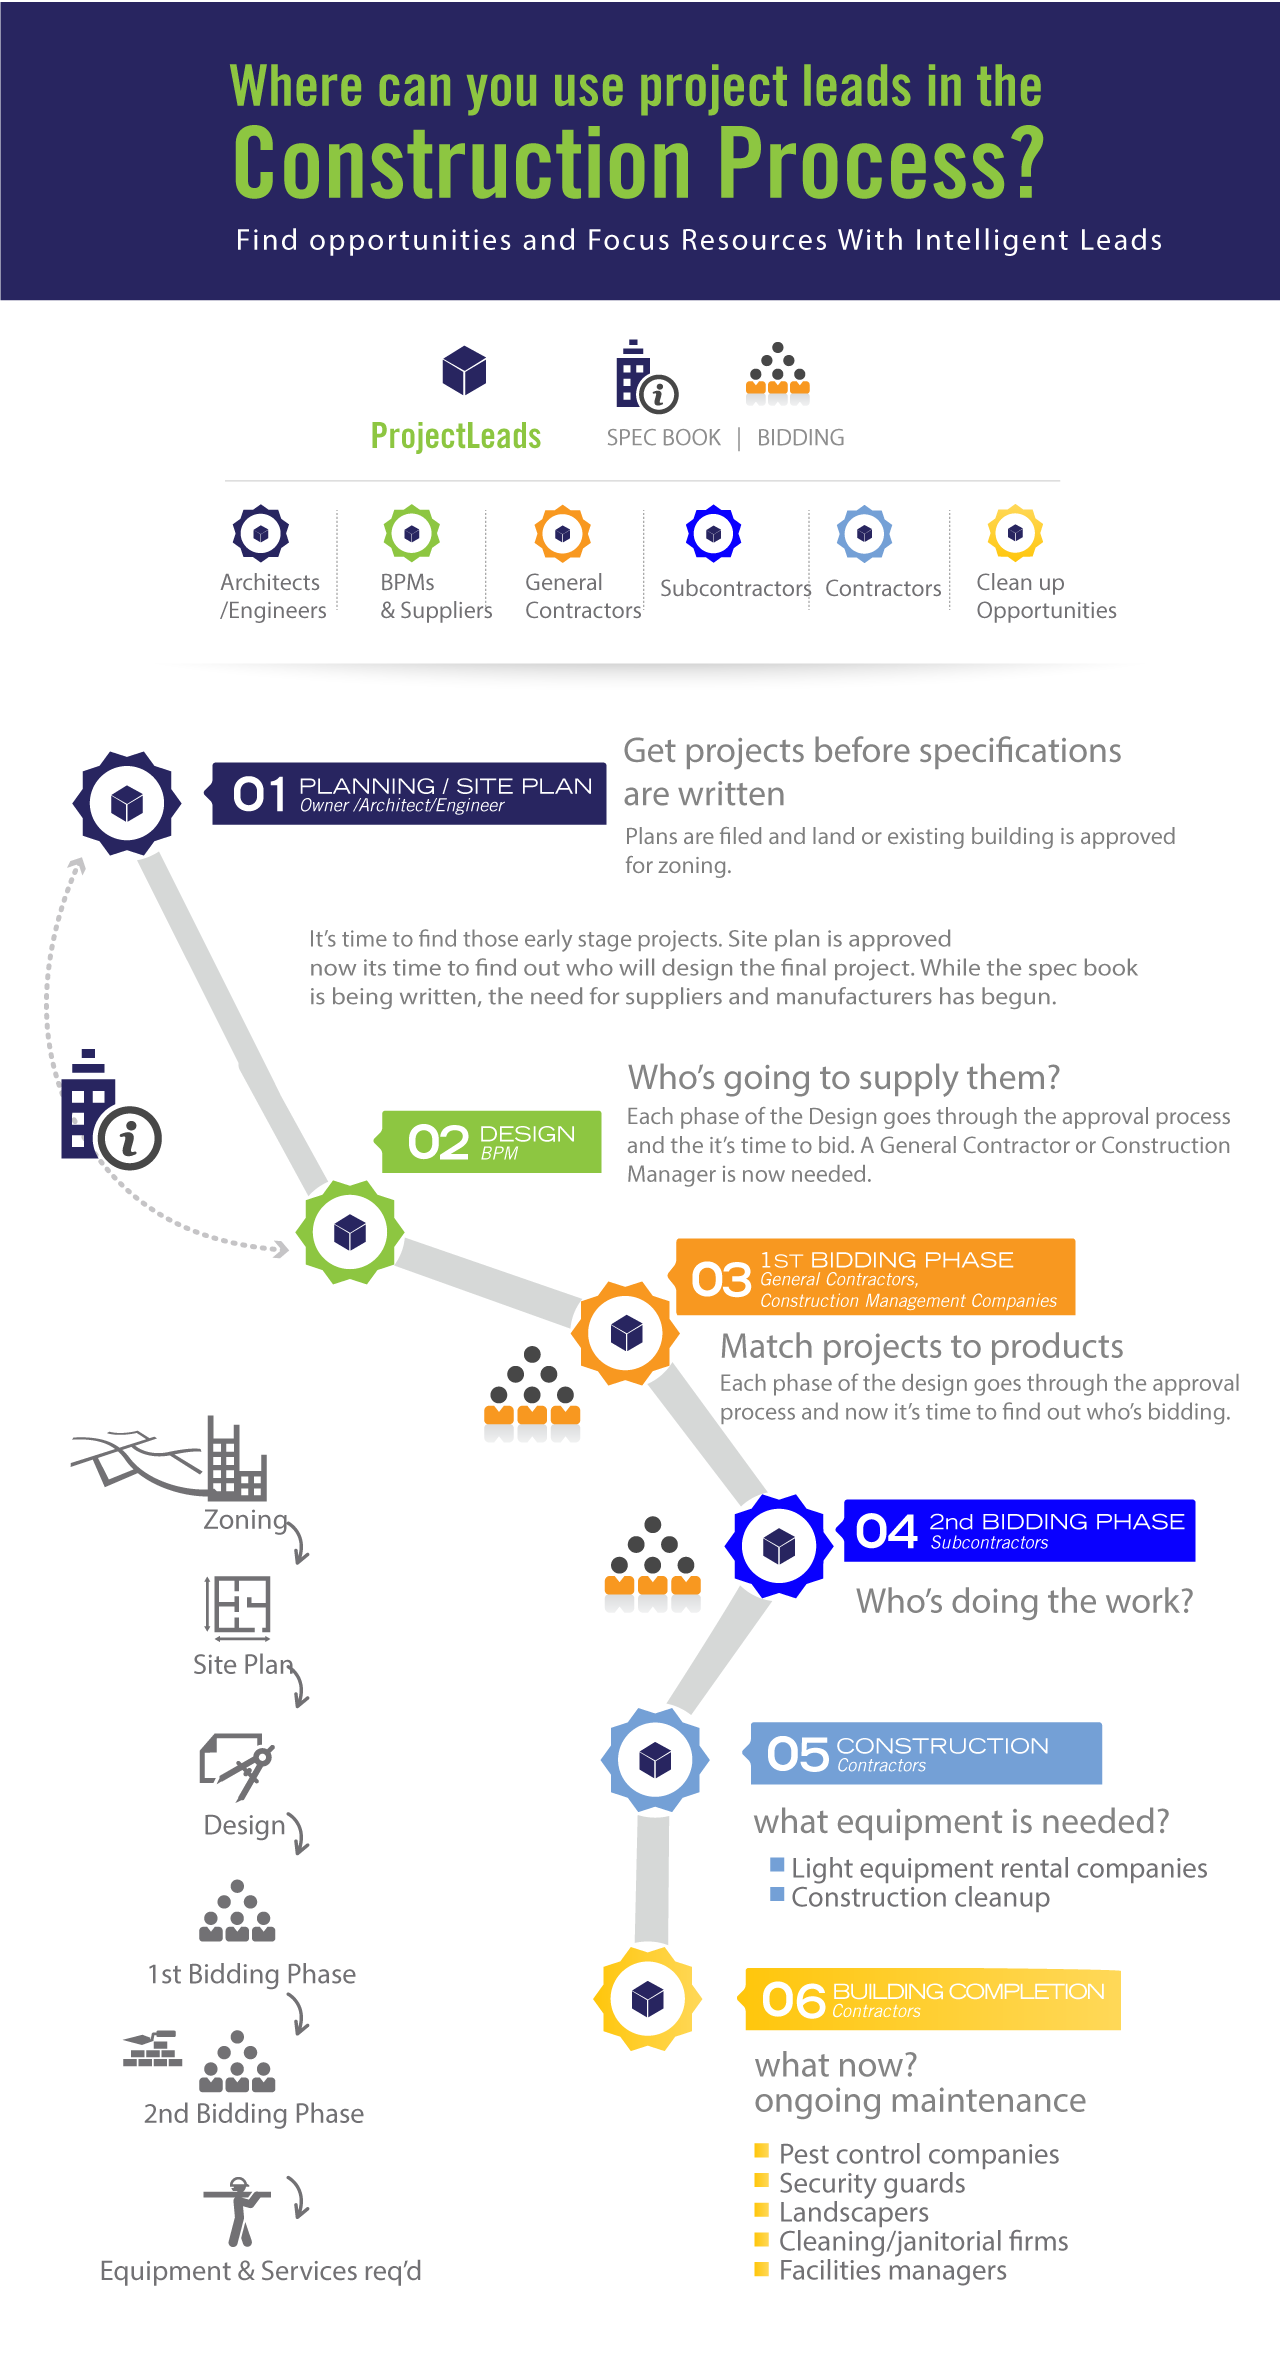 An Infographic Look At Using Project Leads In The Different Parts Of